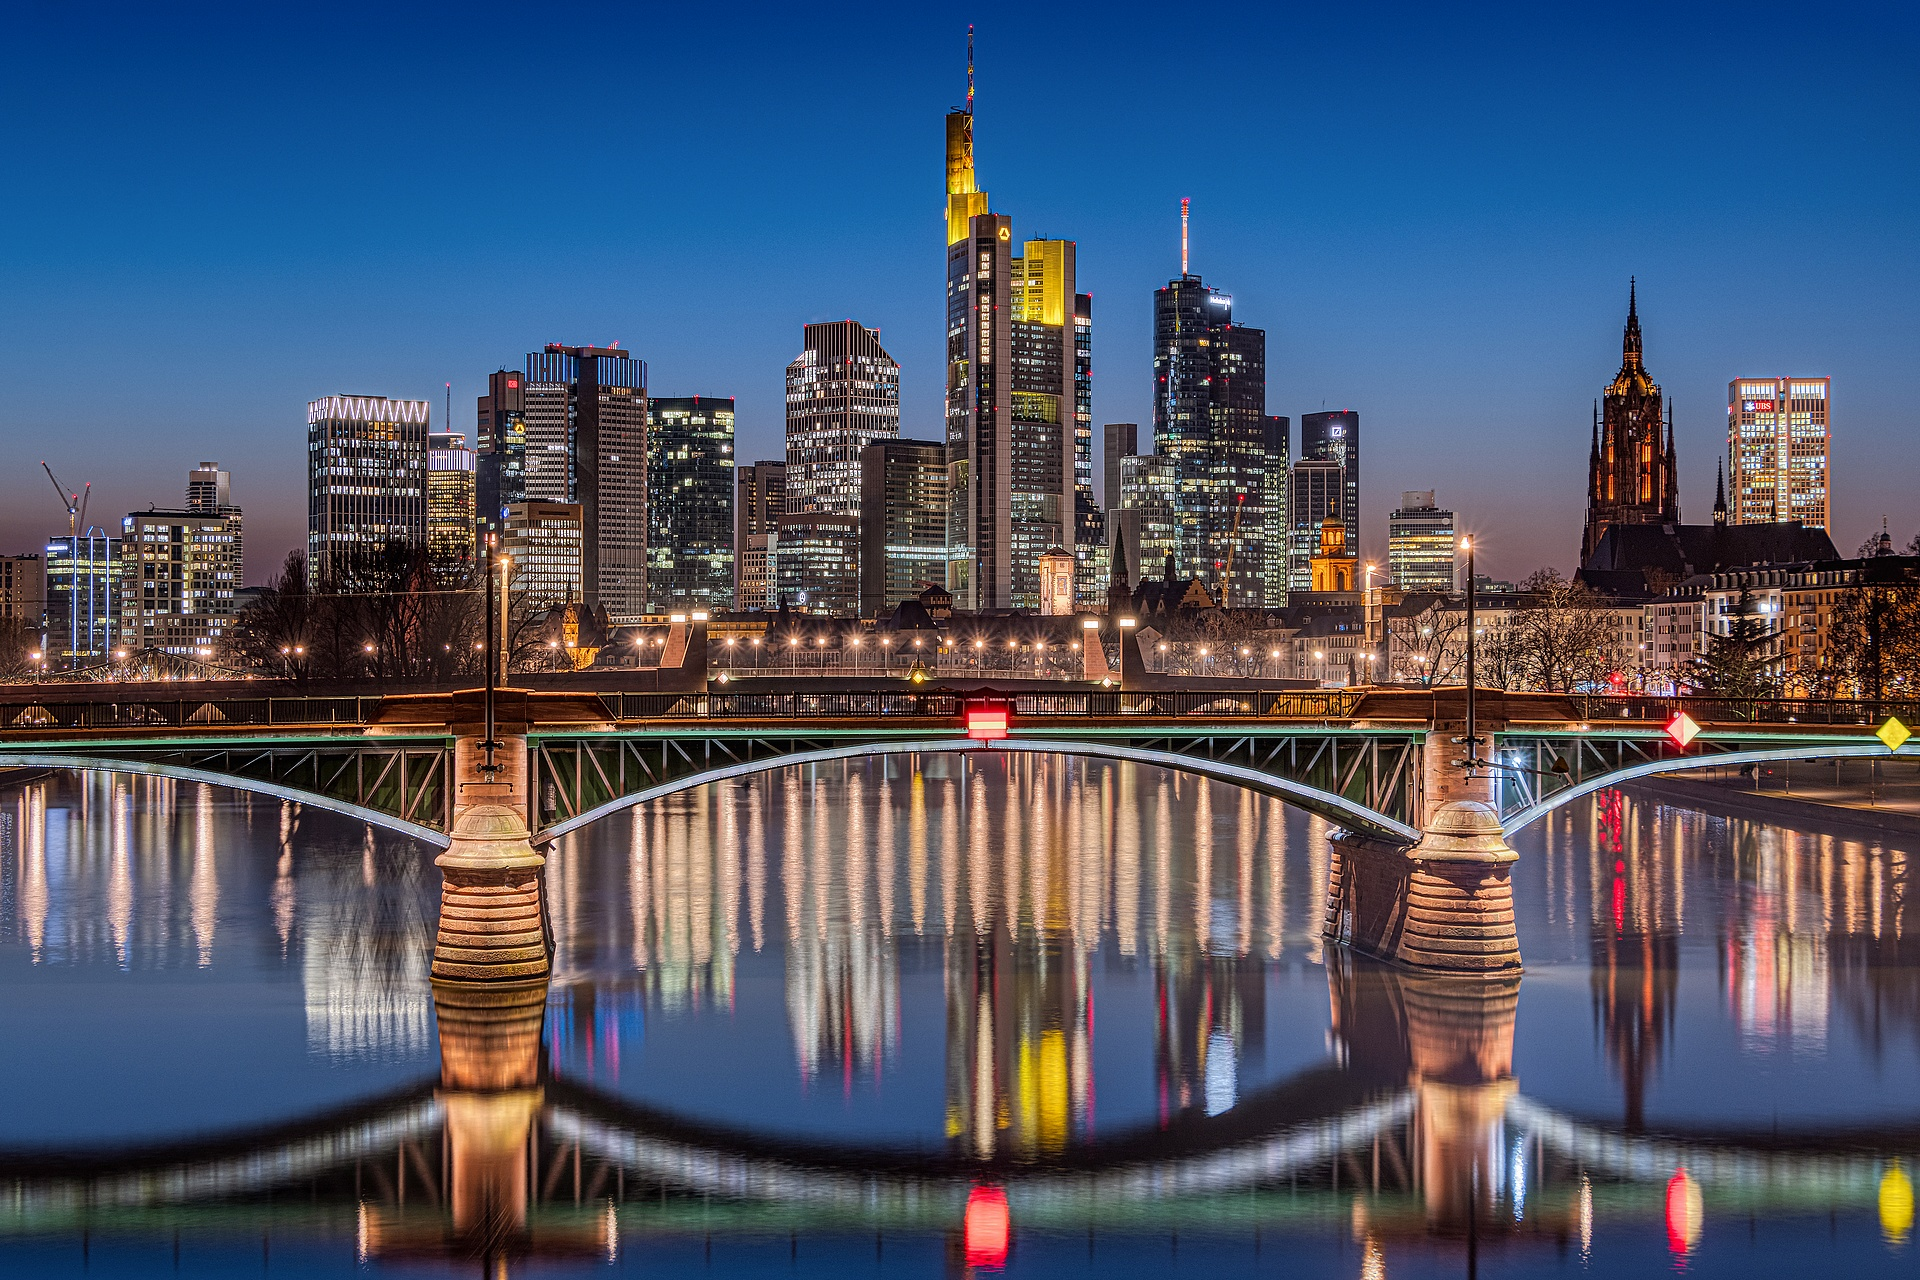 Single frankfurt am main